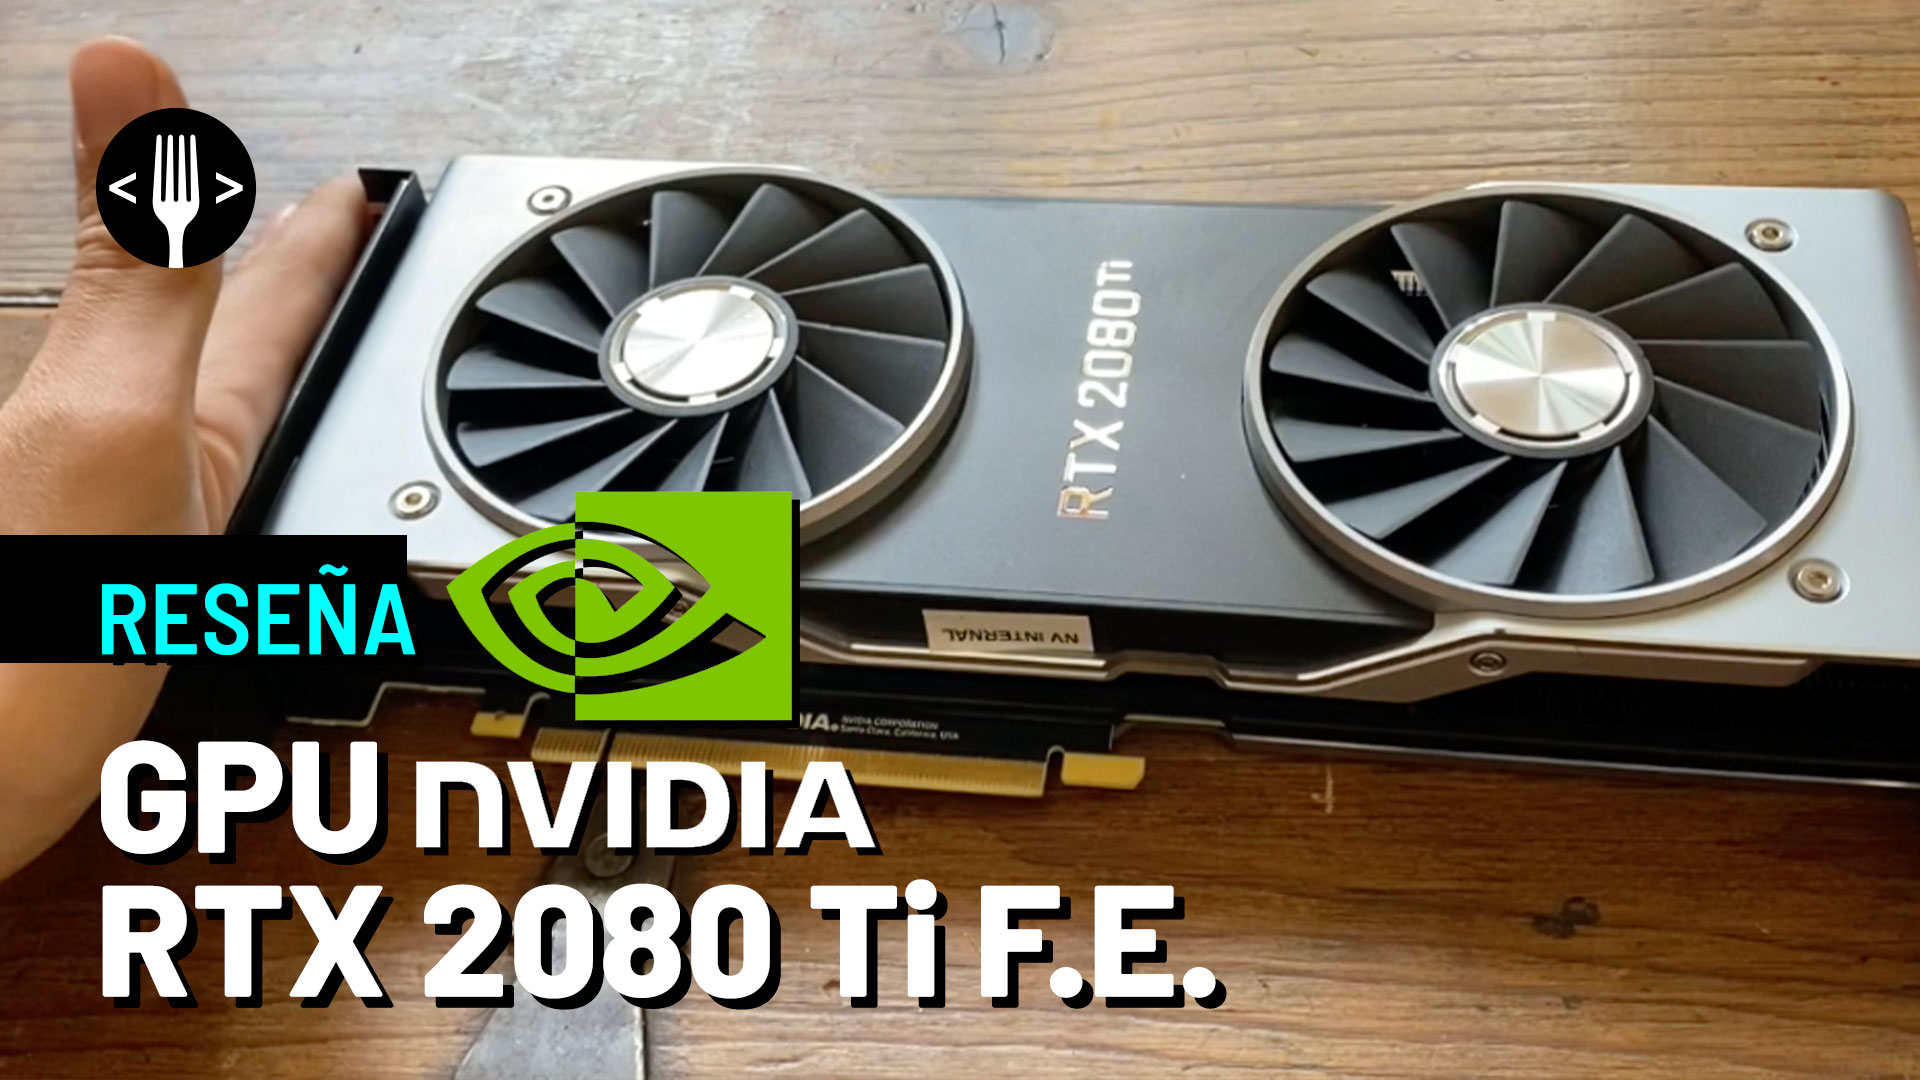 RTX-2080-Ti founders edition